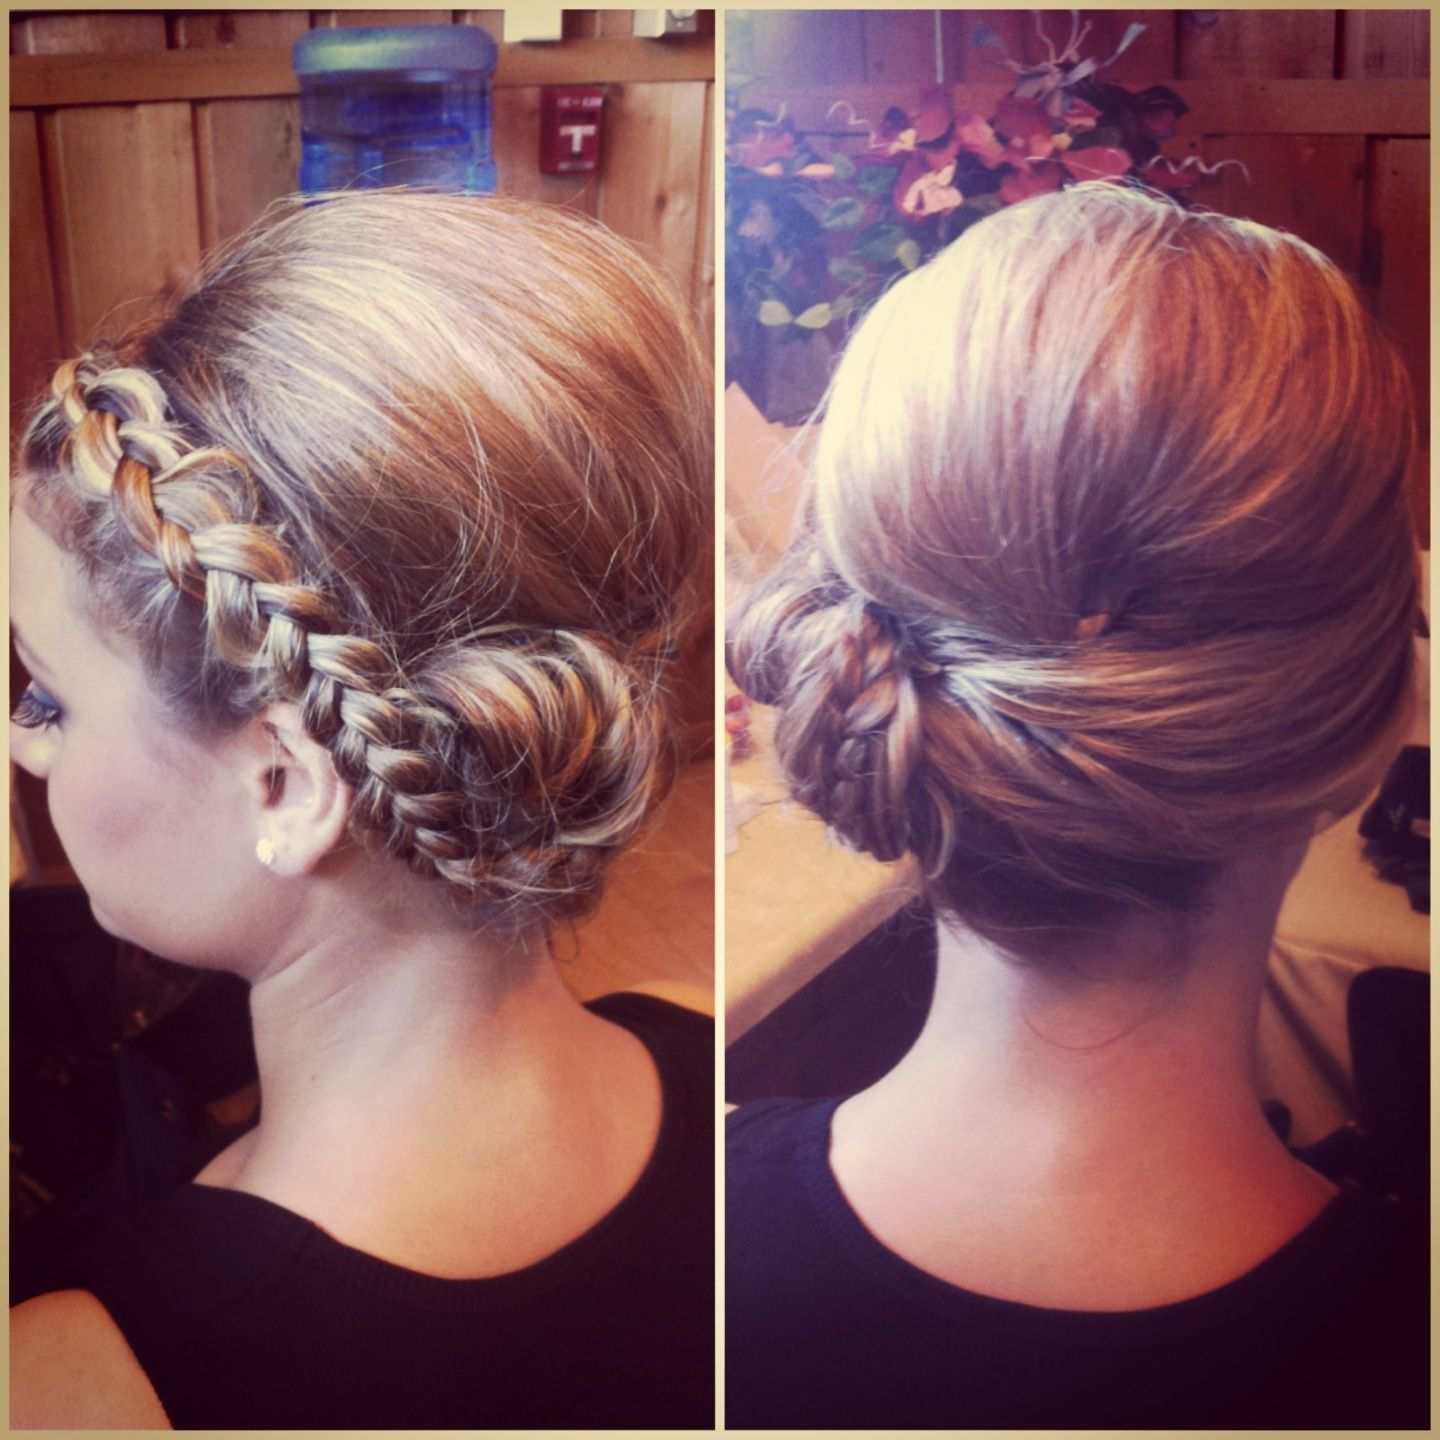 Bridesmaids hair reverse french braid pined up to one side with